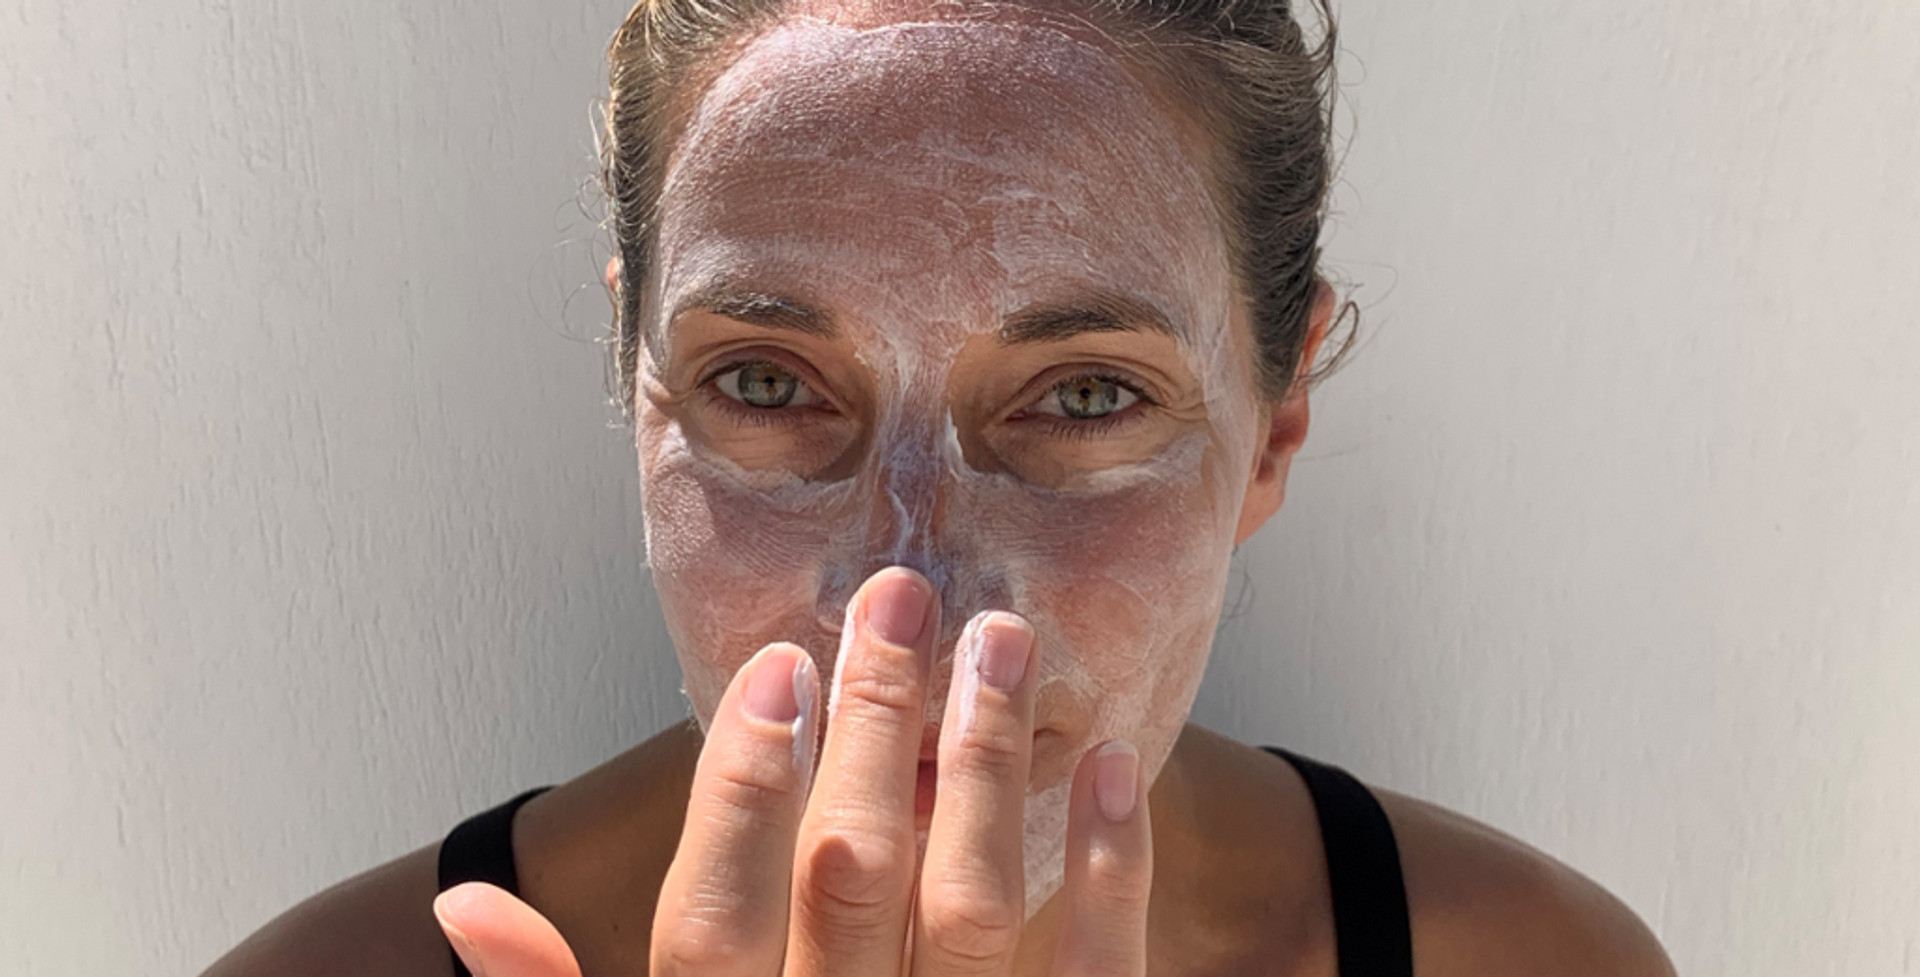 Introducing our new AHA Glow Mask